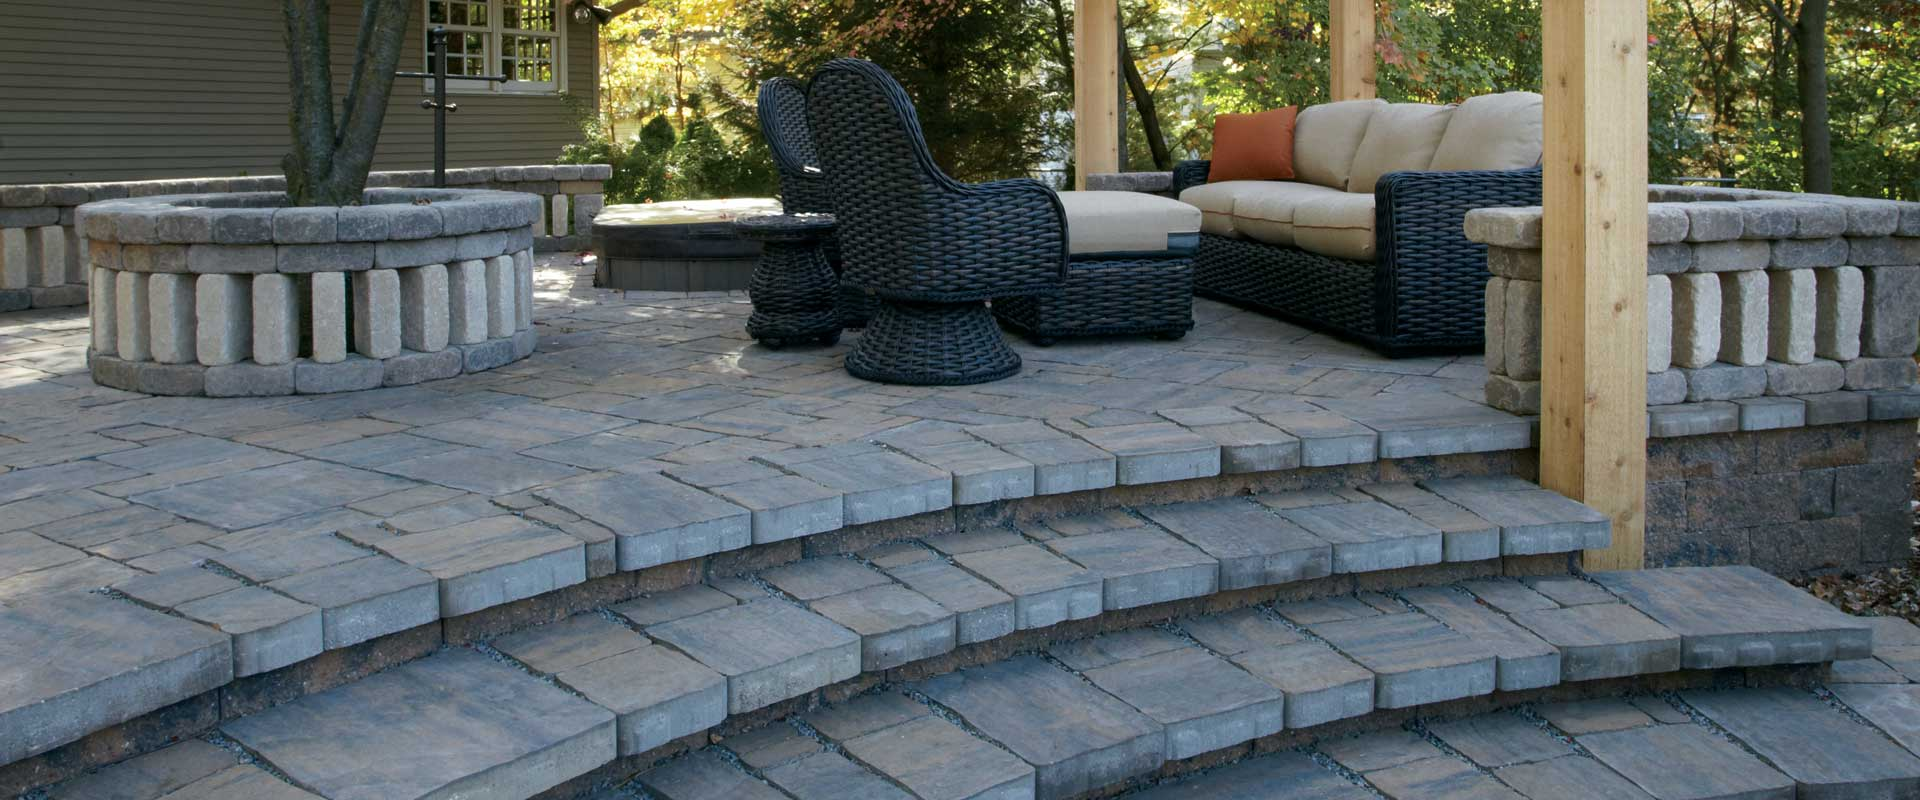 Grand lifestyle pavers and lifestyle pavers Patio products